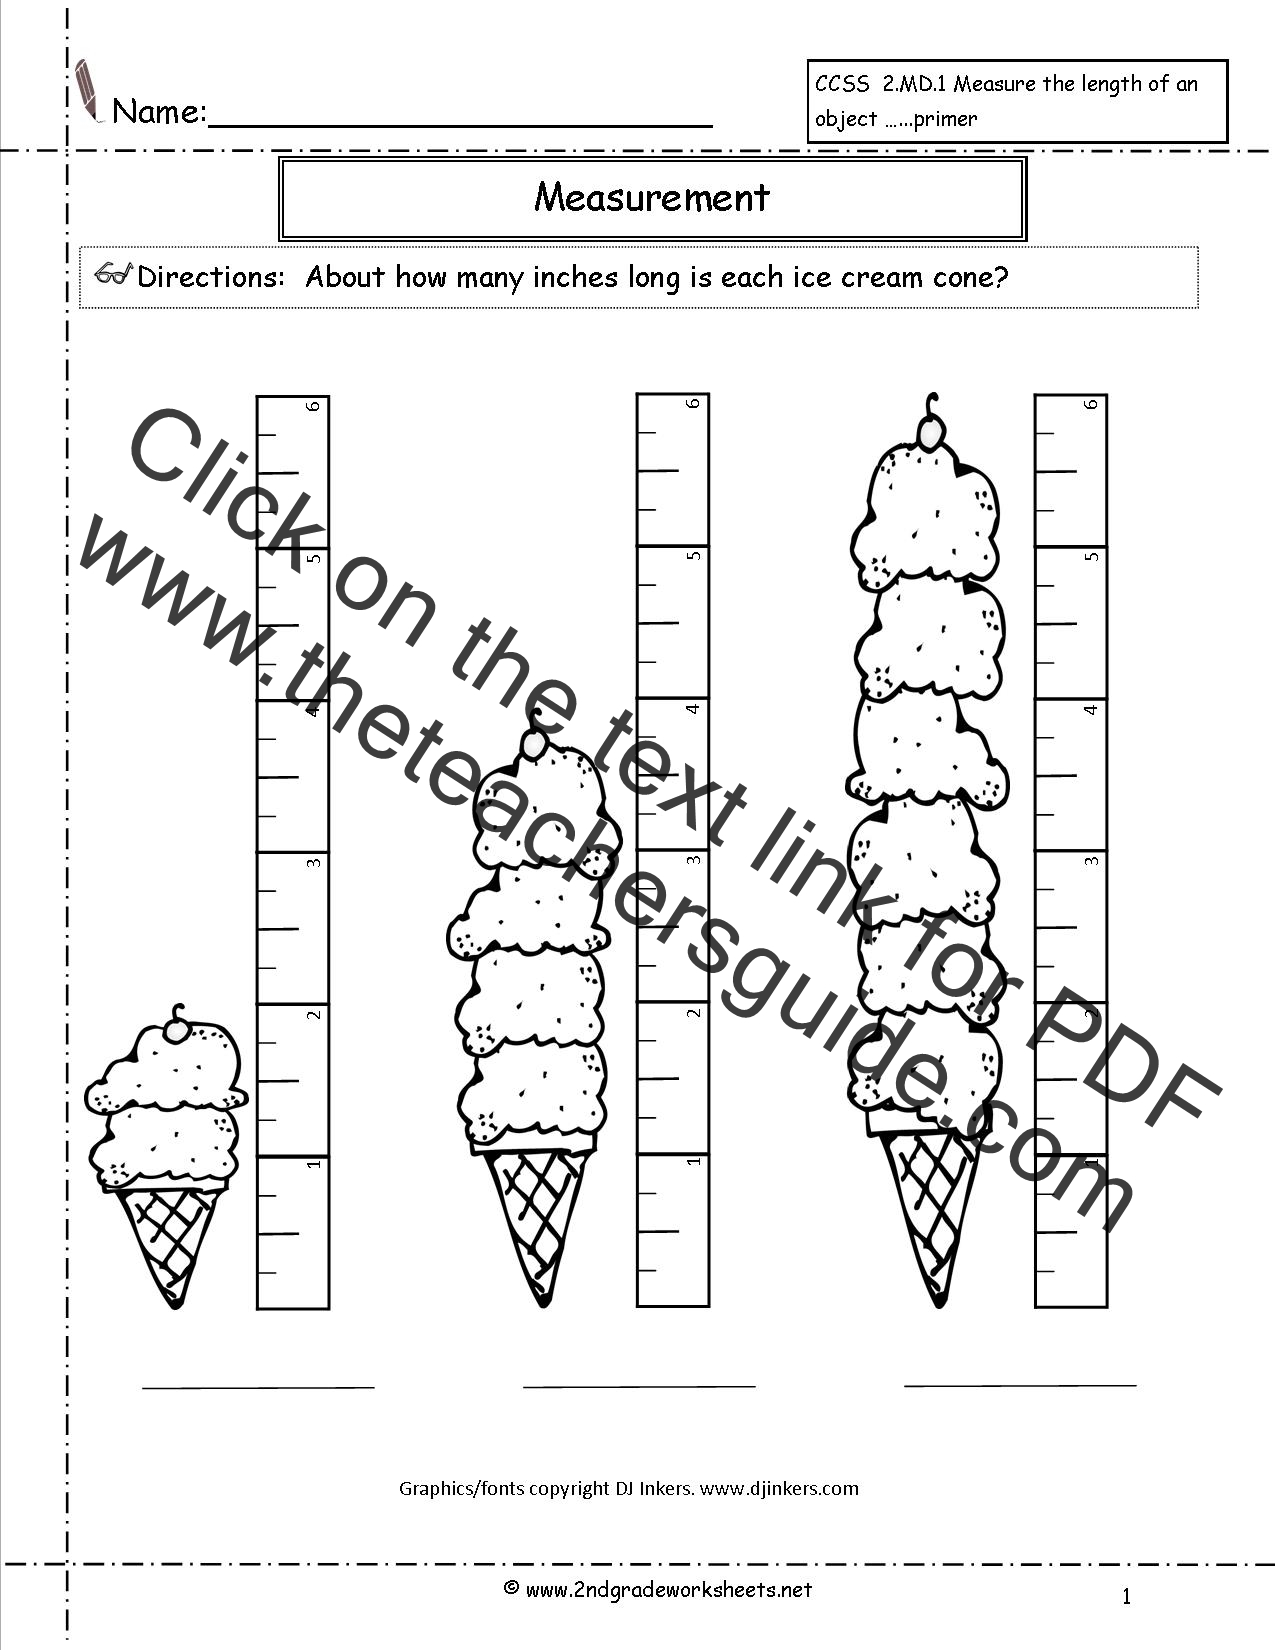 Kindergarten Learning Worksheet Printable With A Ruler To